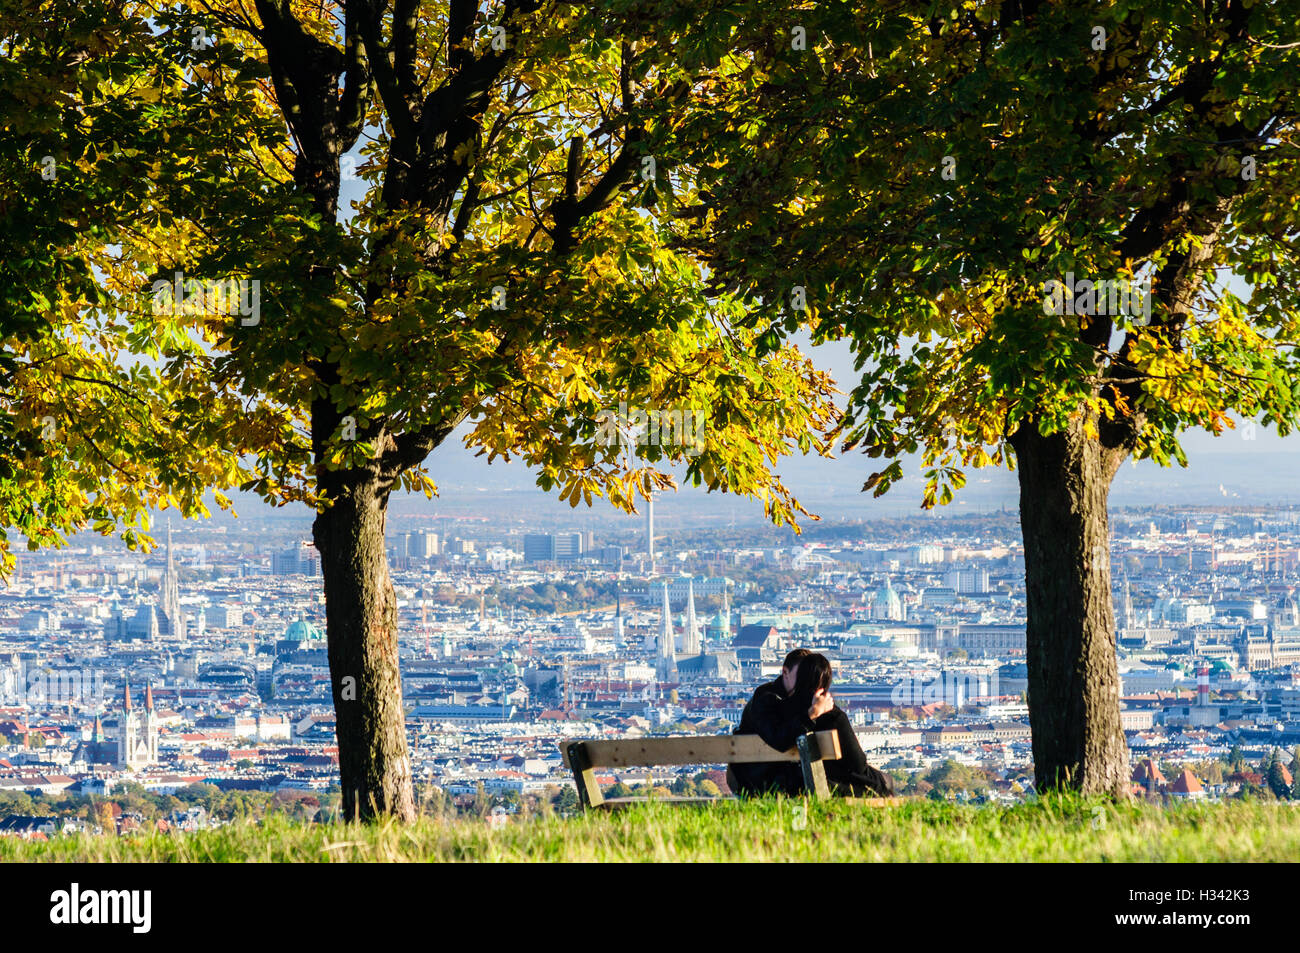 """Wien, Vienna: View of Vienna from the Hill 'Himmel"""", young couple at park bench, 00., Wien, Austria - Stock Image"""